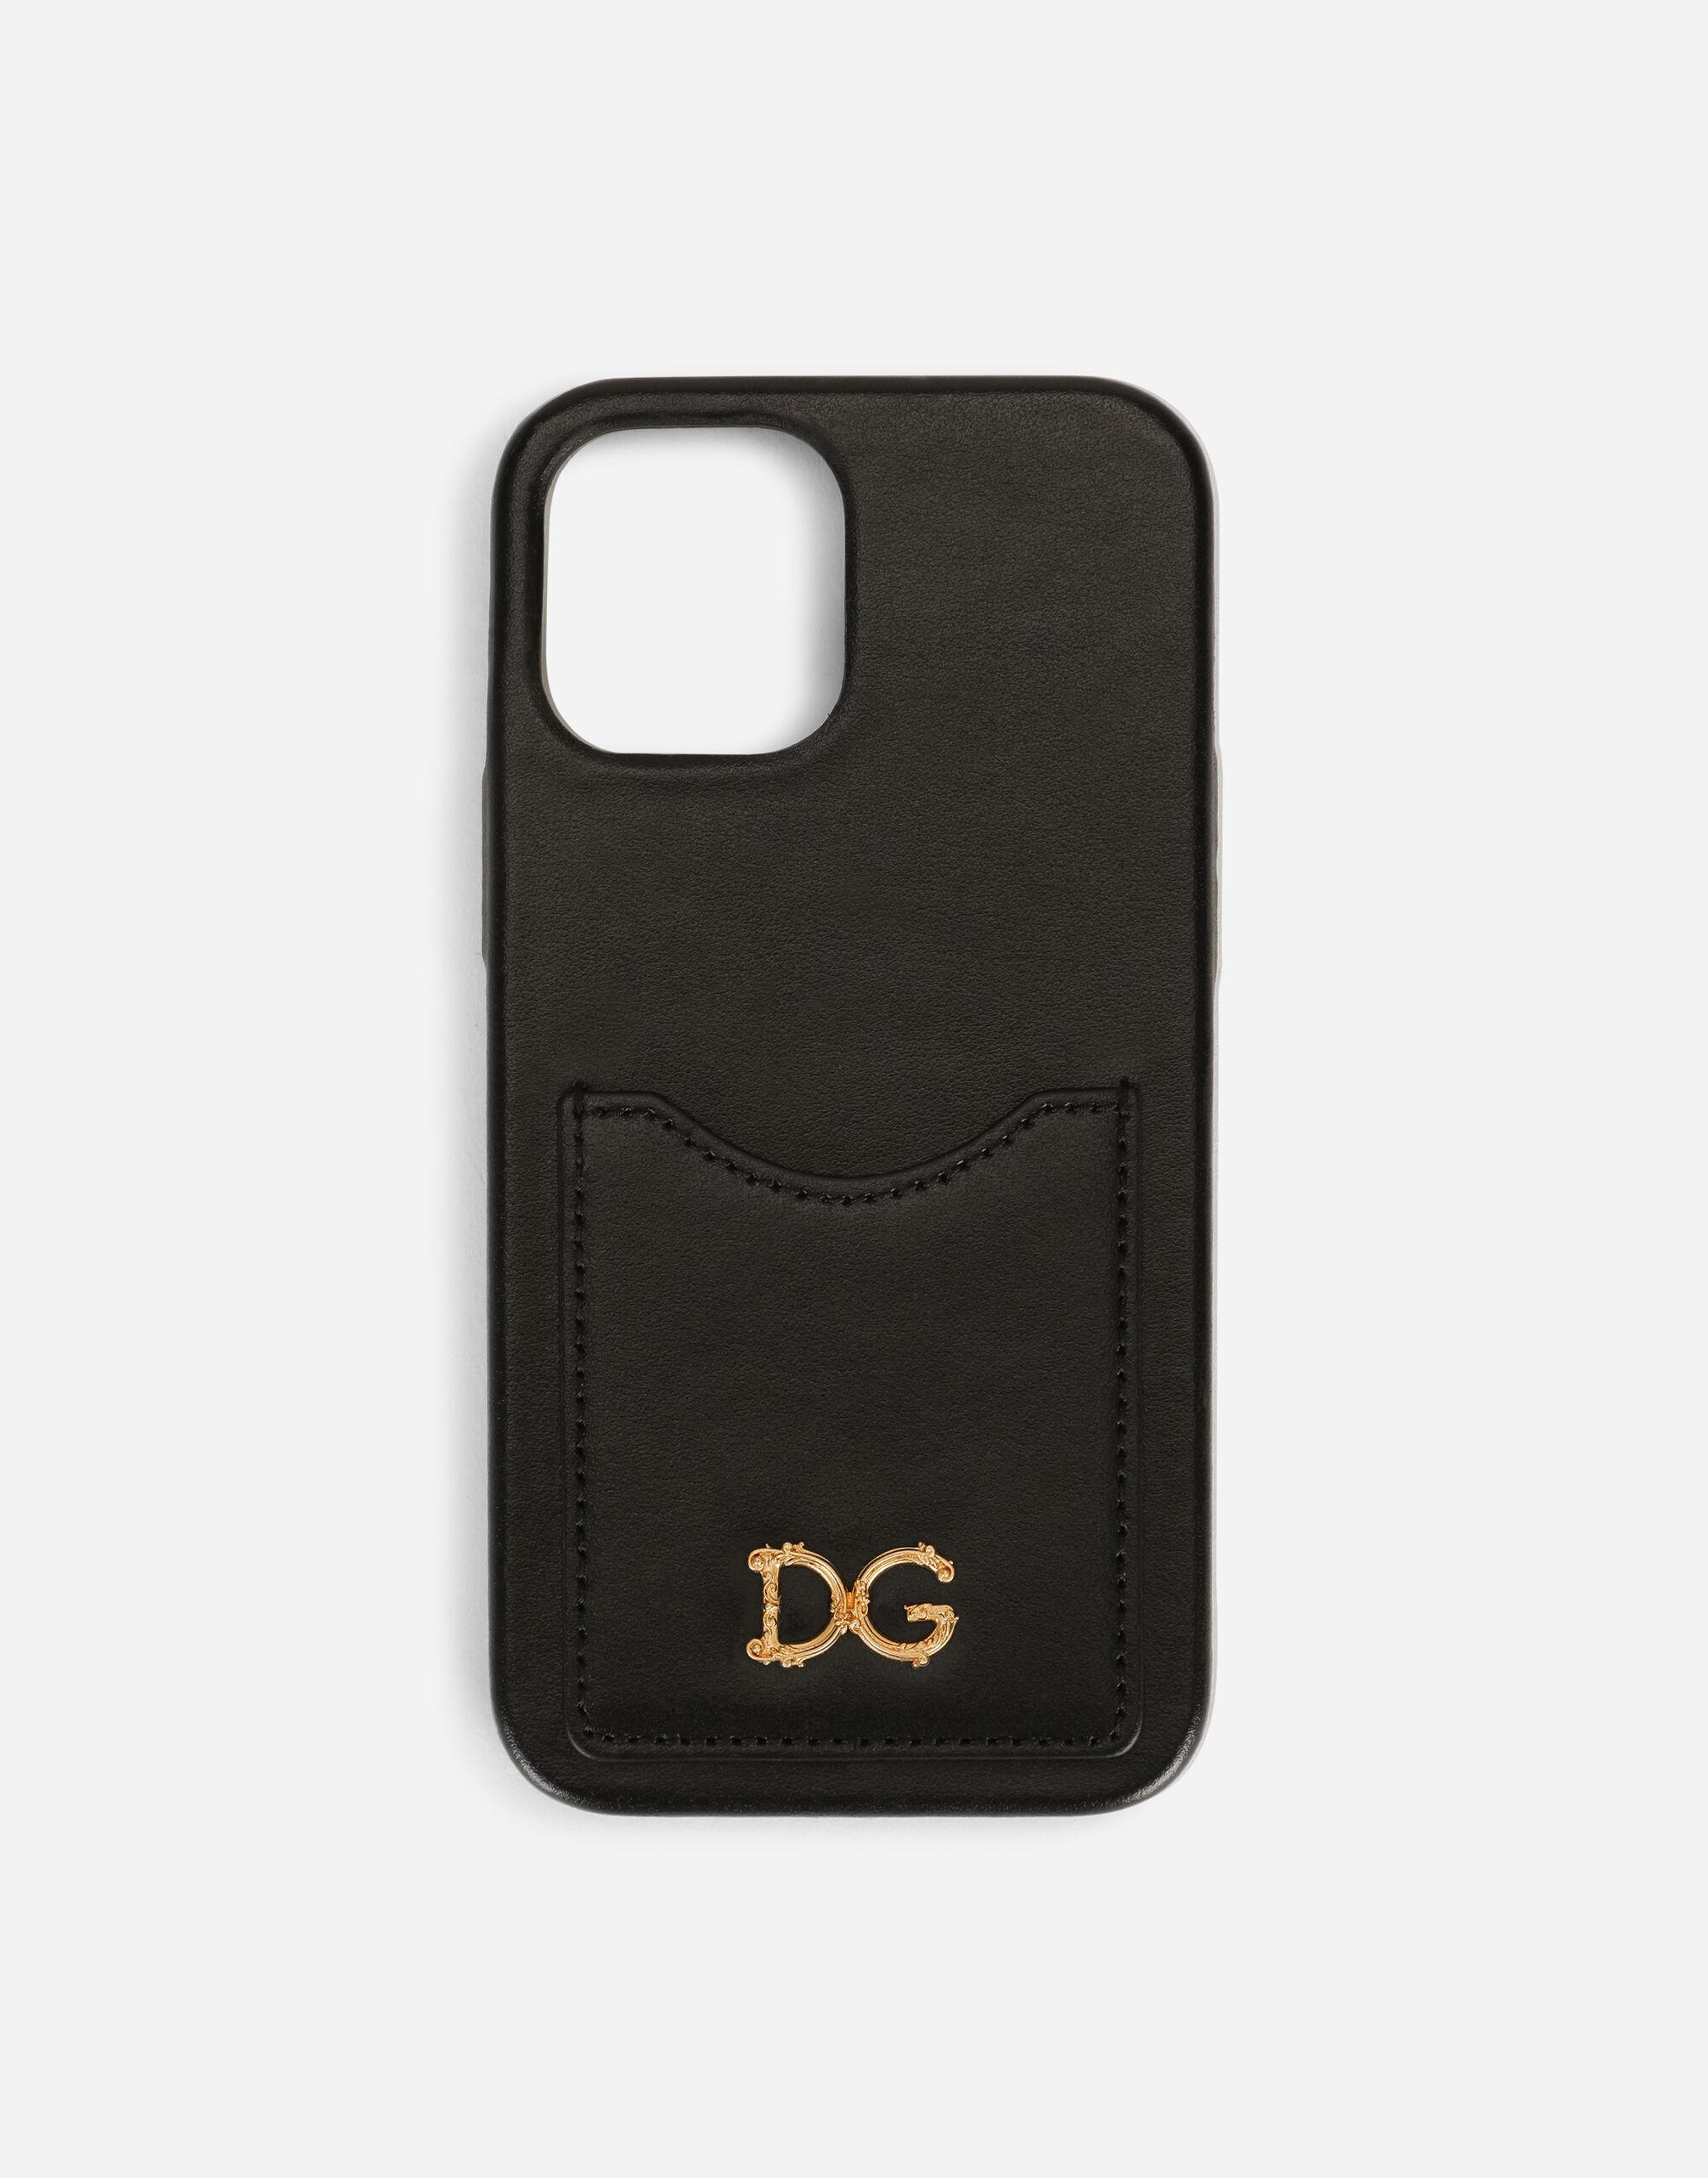 Calfskin iPhone 12 Max cover with baroque DG logo